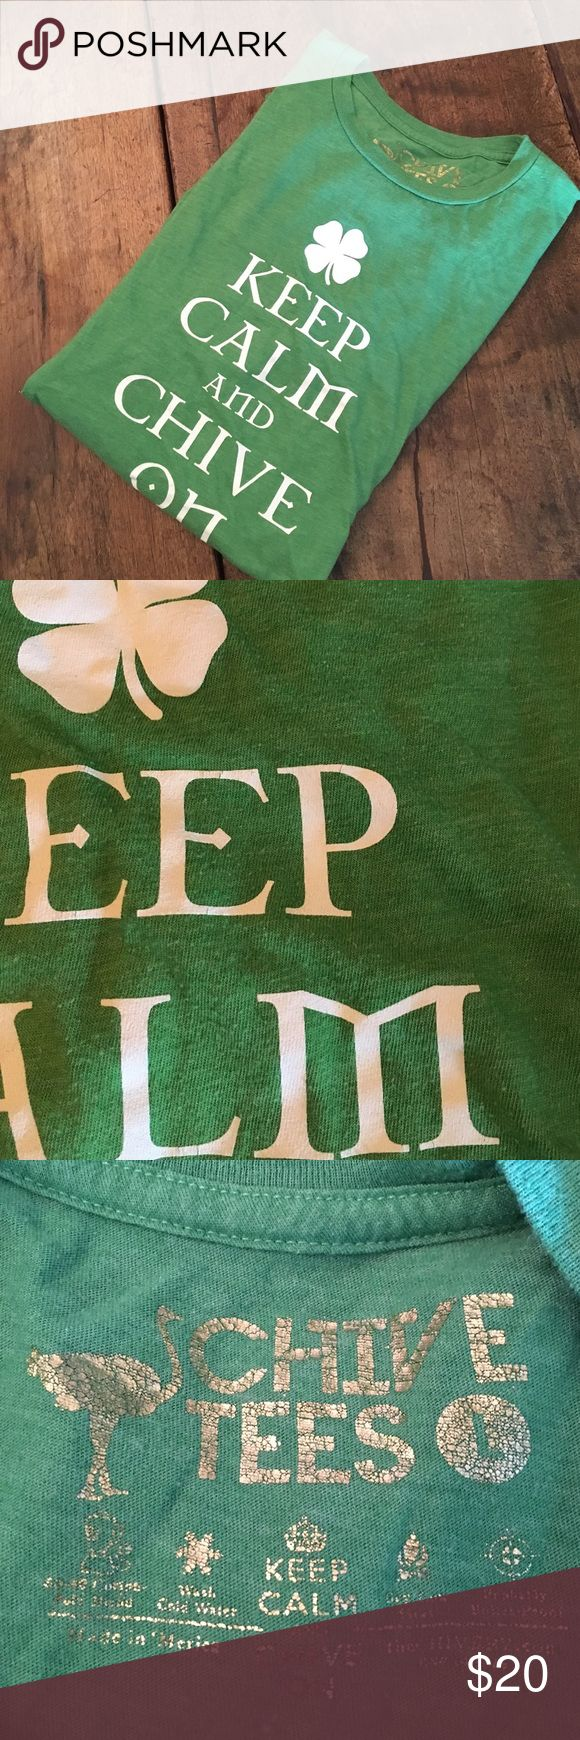 KCCO (Keep Calm and Chive On) shamrock shirt (L)! Hard to get KCCO (Keep Calm and Chive On) shamrock shirt for St. Patrick's Day!! Authentic Chive shirt from thechivery.com! Soft and thin fabric - perfect for a St. Pattys celebration!! Worn so there is slight pilling (see pic) but lots of life left!! Women's shirt also available! Bundle for a discount!! Chive Shirts Tees - Short Sleeve